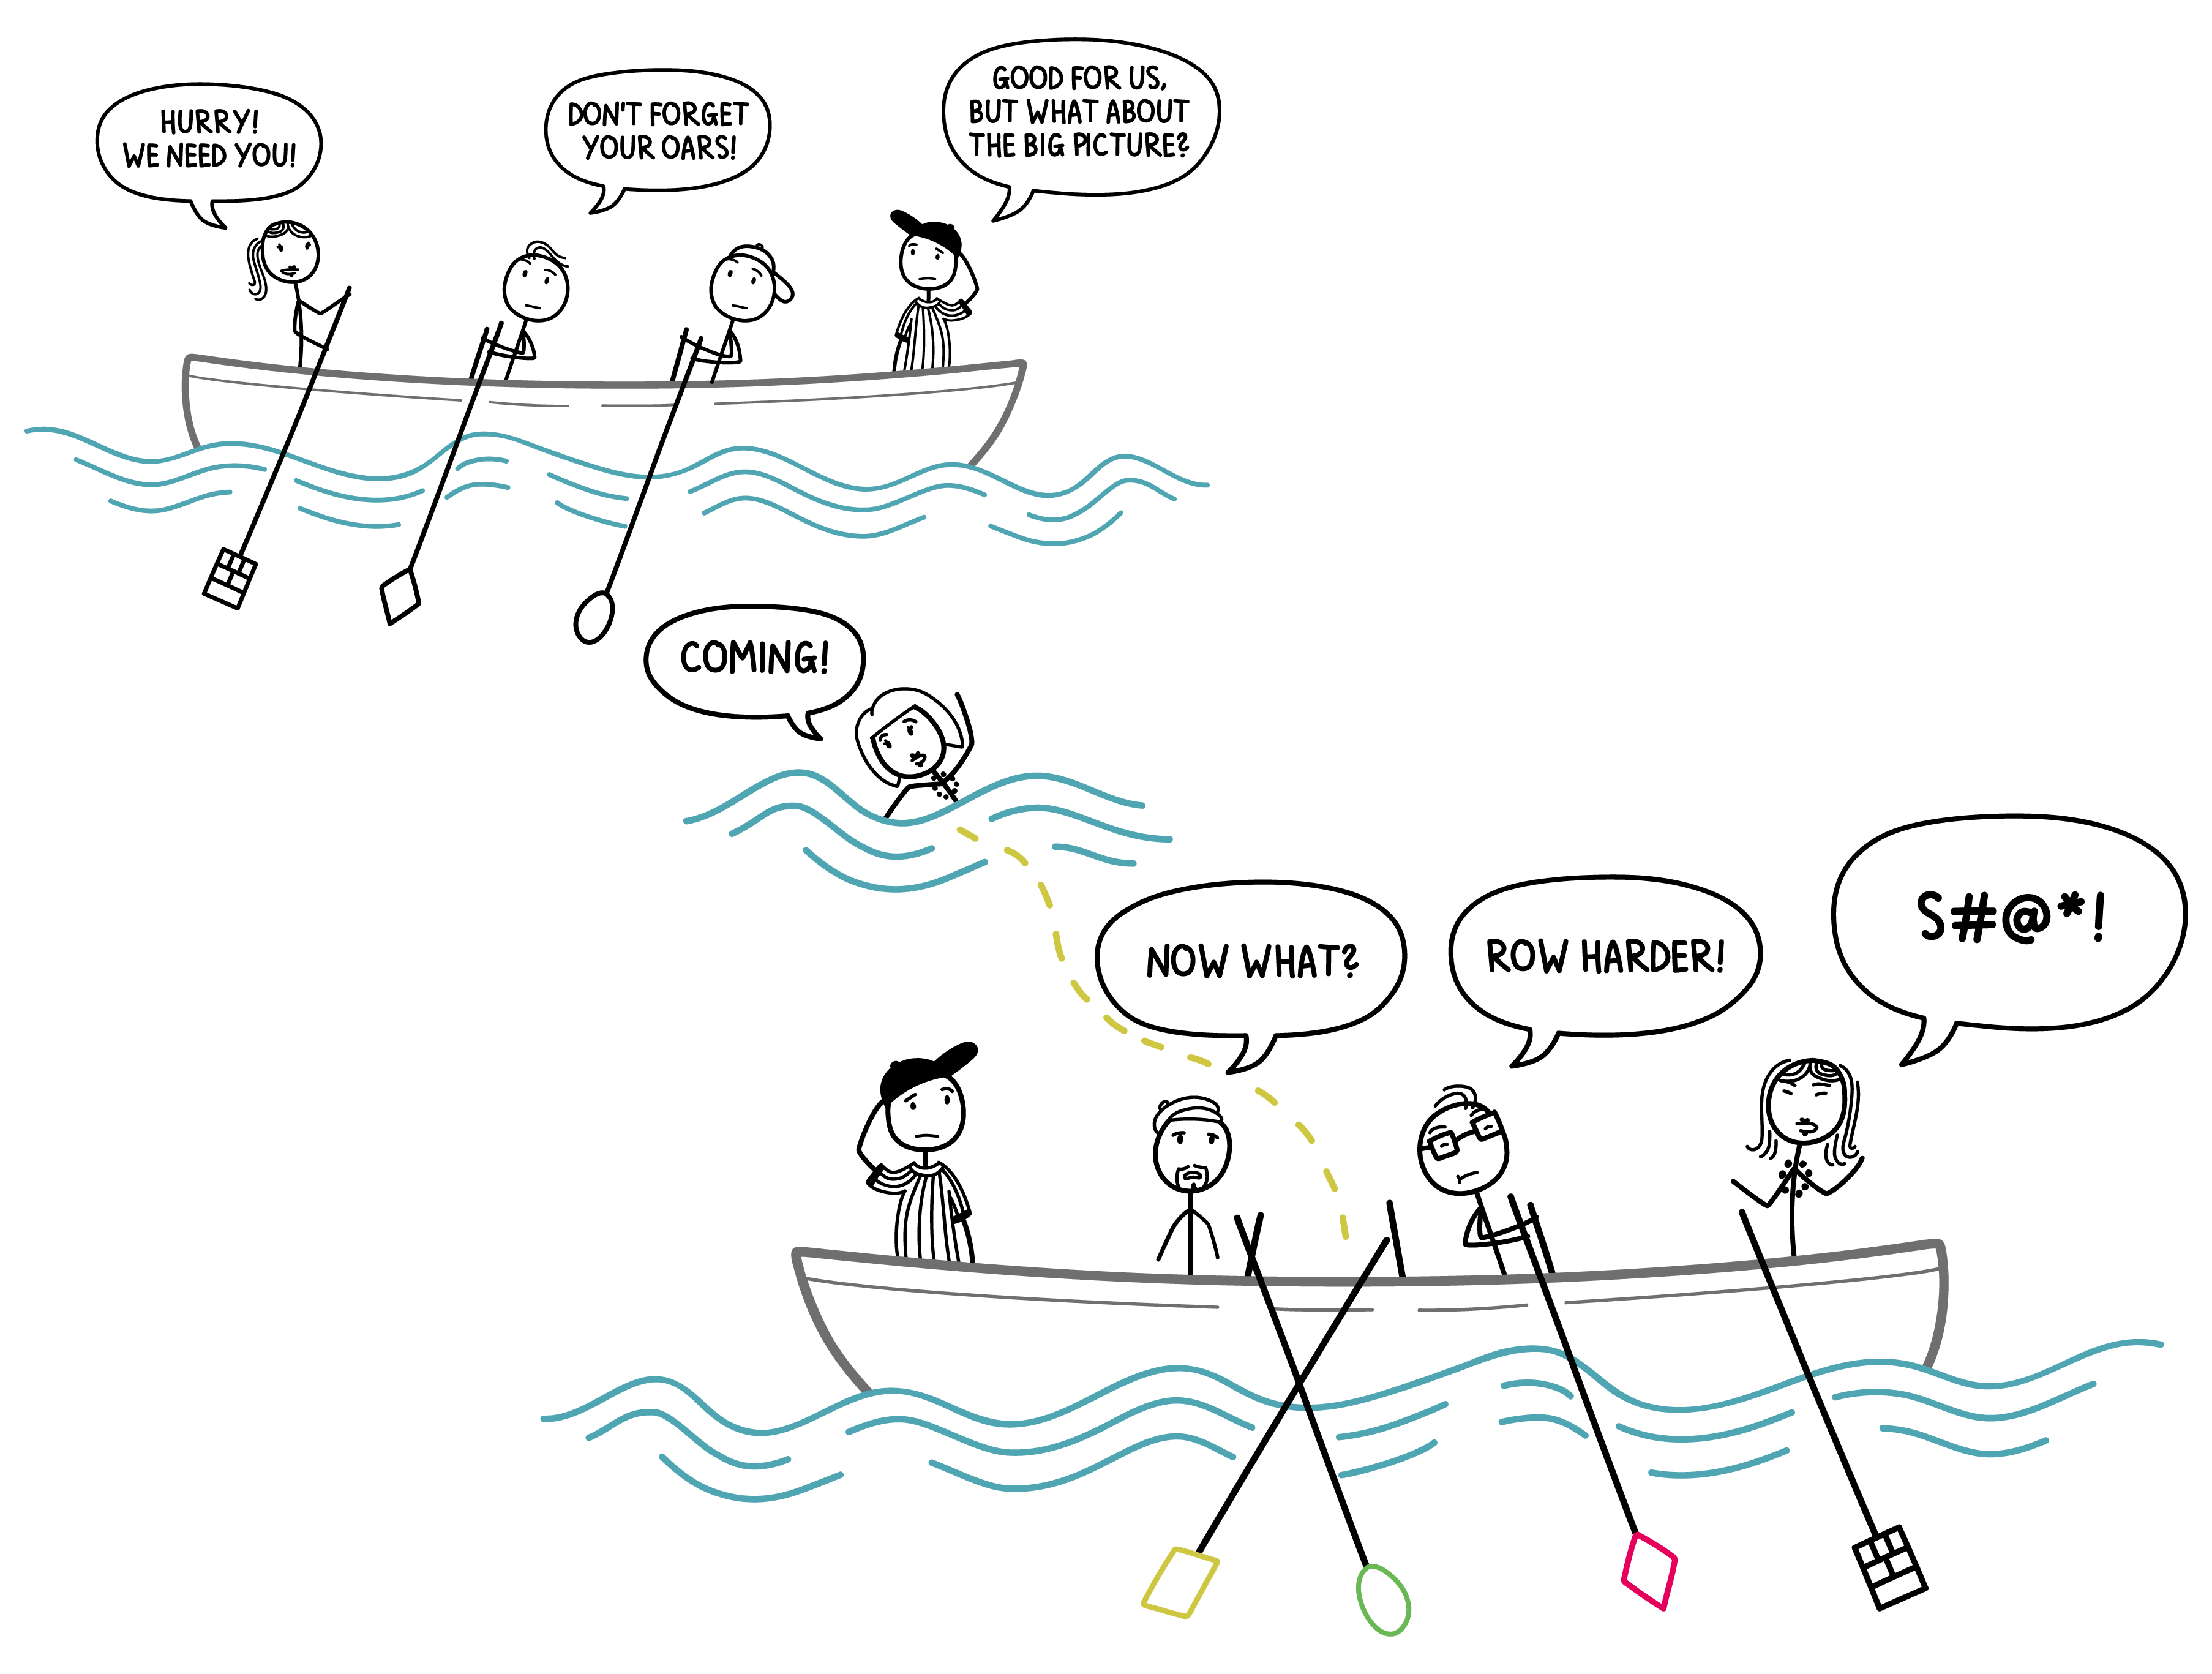 What might happen if a member of a crew needs to change boats during the journey.